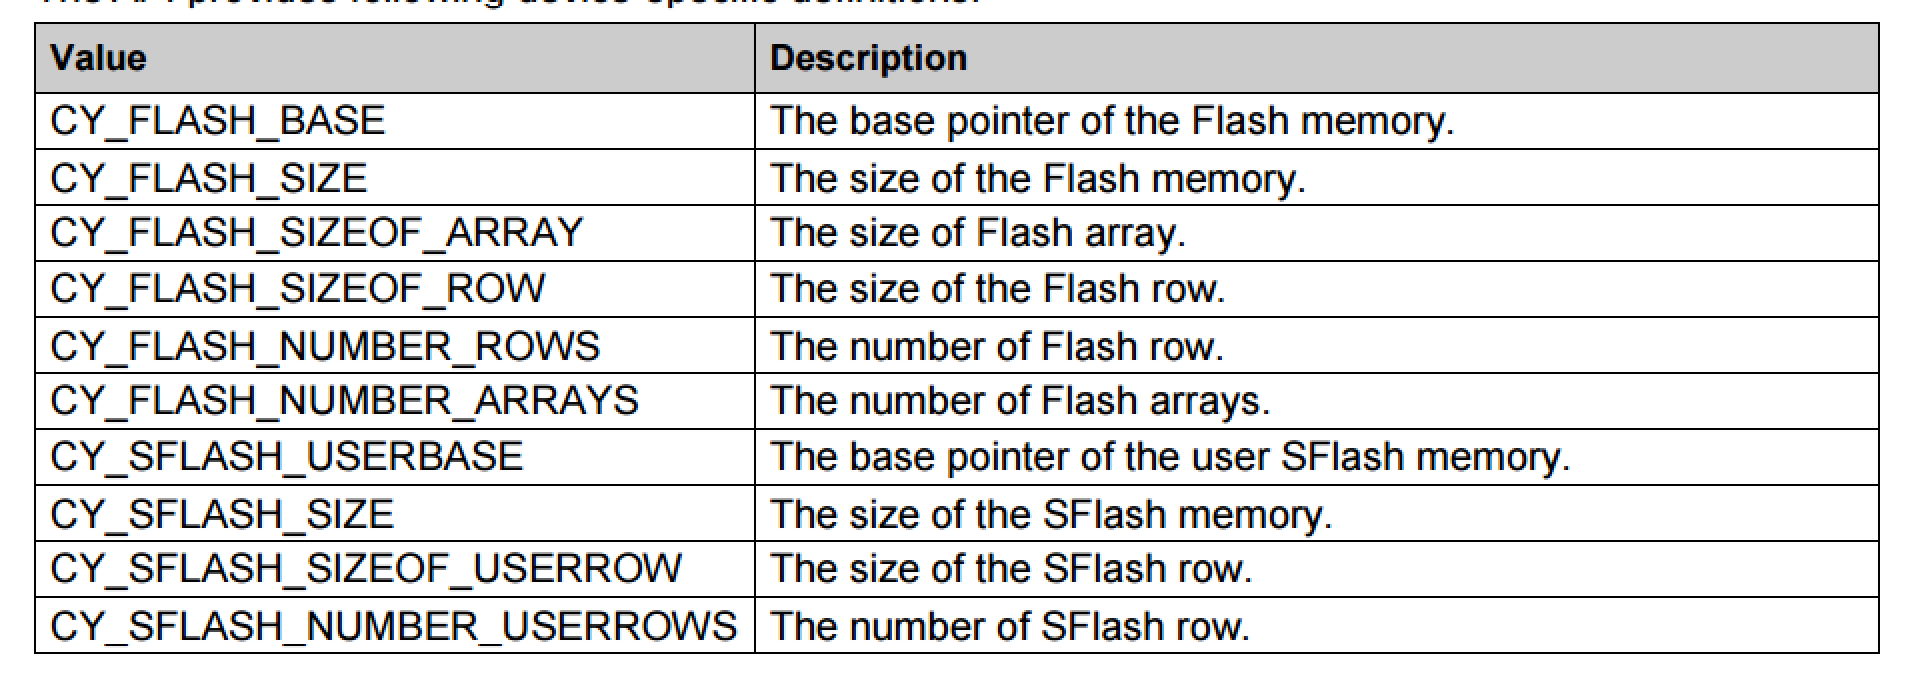 PSoC 4 Flash System Reference Guide